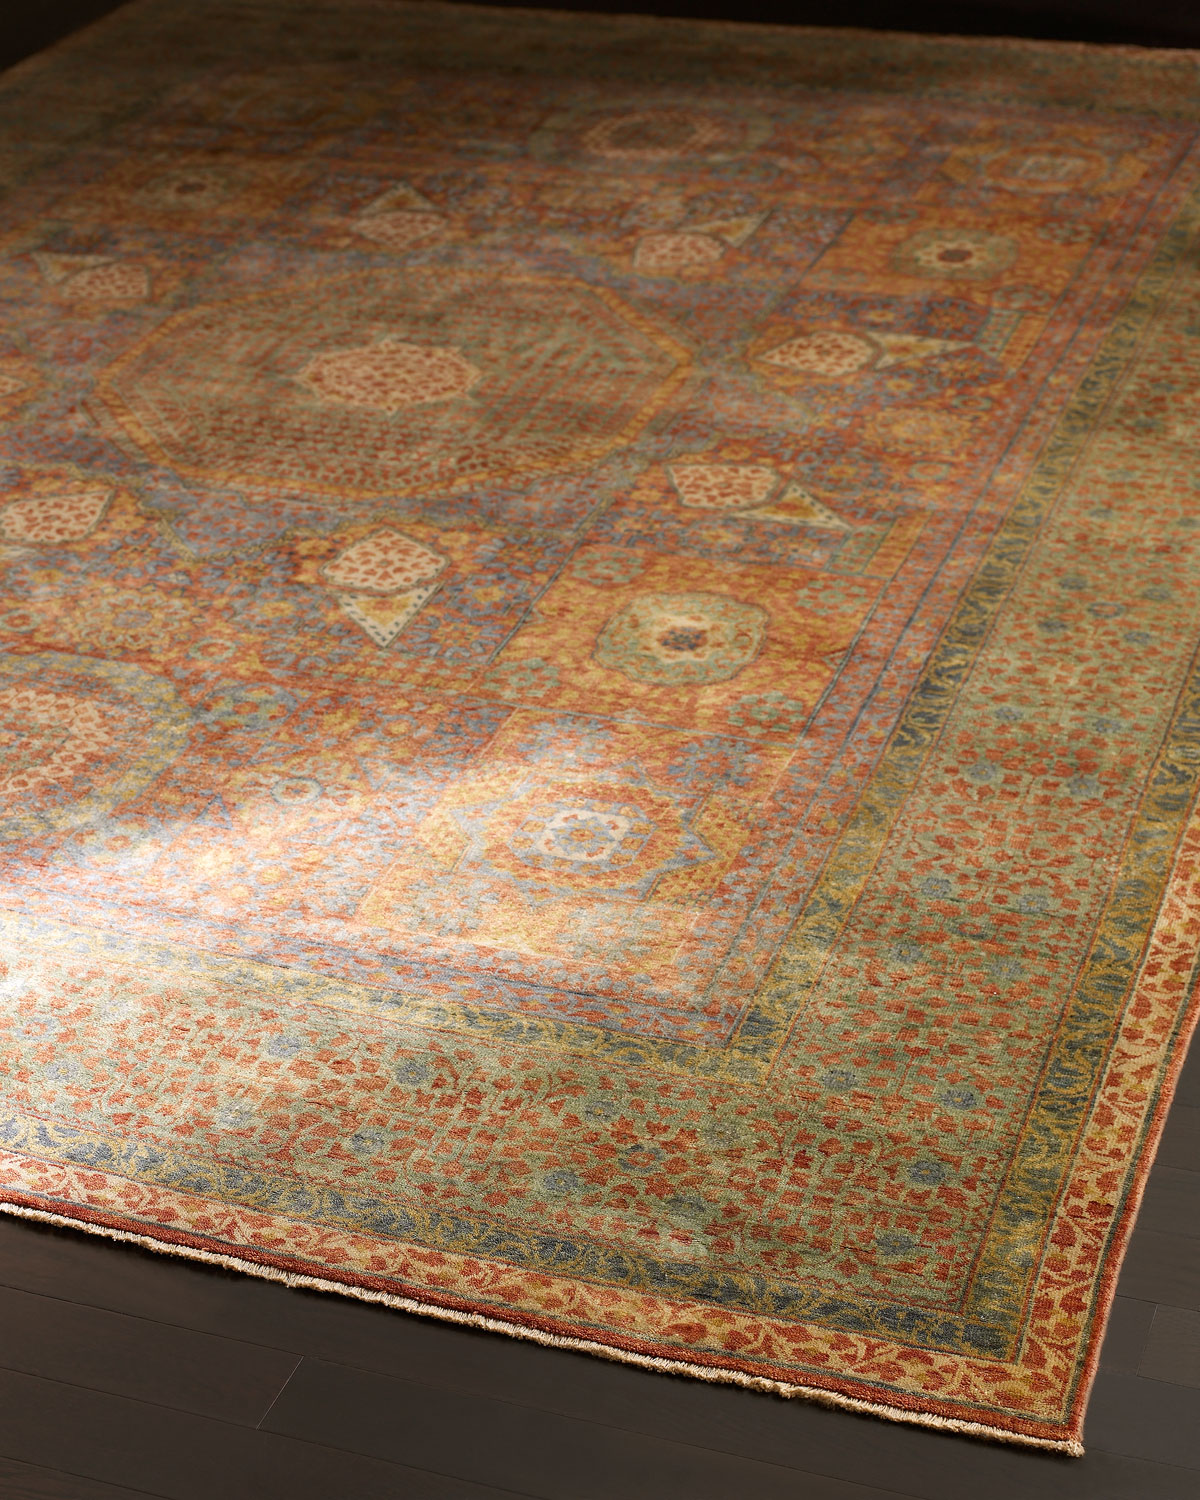 Exquisite Rugs Gable Colors Rug, 12' x 15'